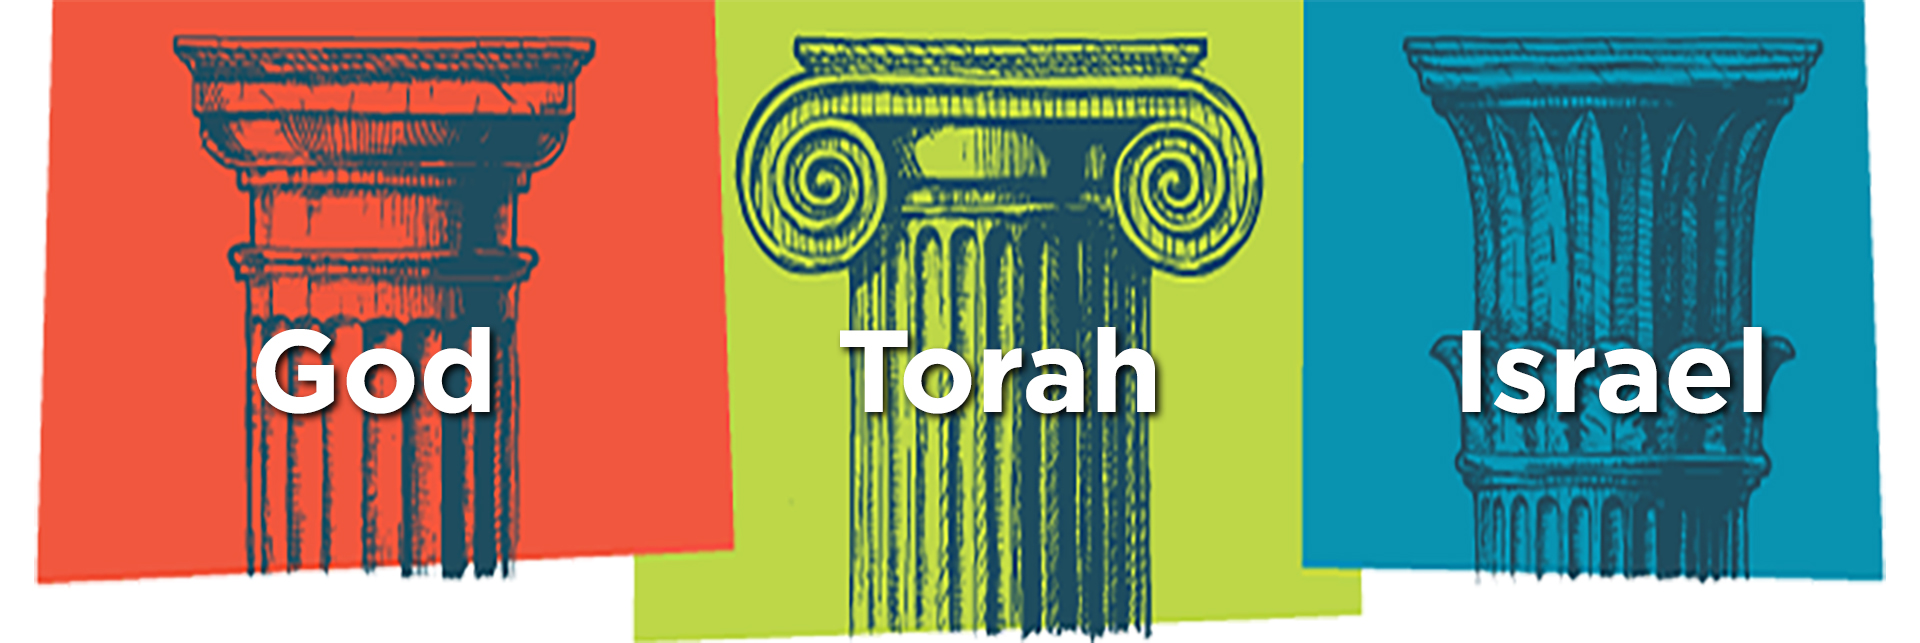 """<a href=""""https://woodburyjc.shulcloud.com/event/explore-the-three-pillars-of-judaism-with-rabbi-fruithandler.html""""                                     target=""""_blank"""">                                                                 <span class=""""slider_title"""">                                     Explore The Three Pillars of Judaism                                </span>                                                                 </a>                                                                                                                                                                                       <span class=""""slider_description"""">Join Rabbi Fruithandler for a three part class on June 5th, 9th, and 19th.  Sign up now!</span>"""